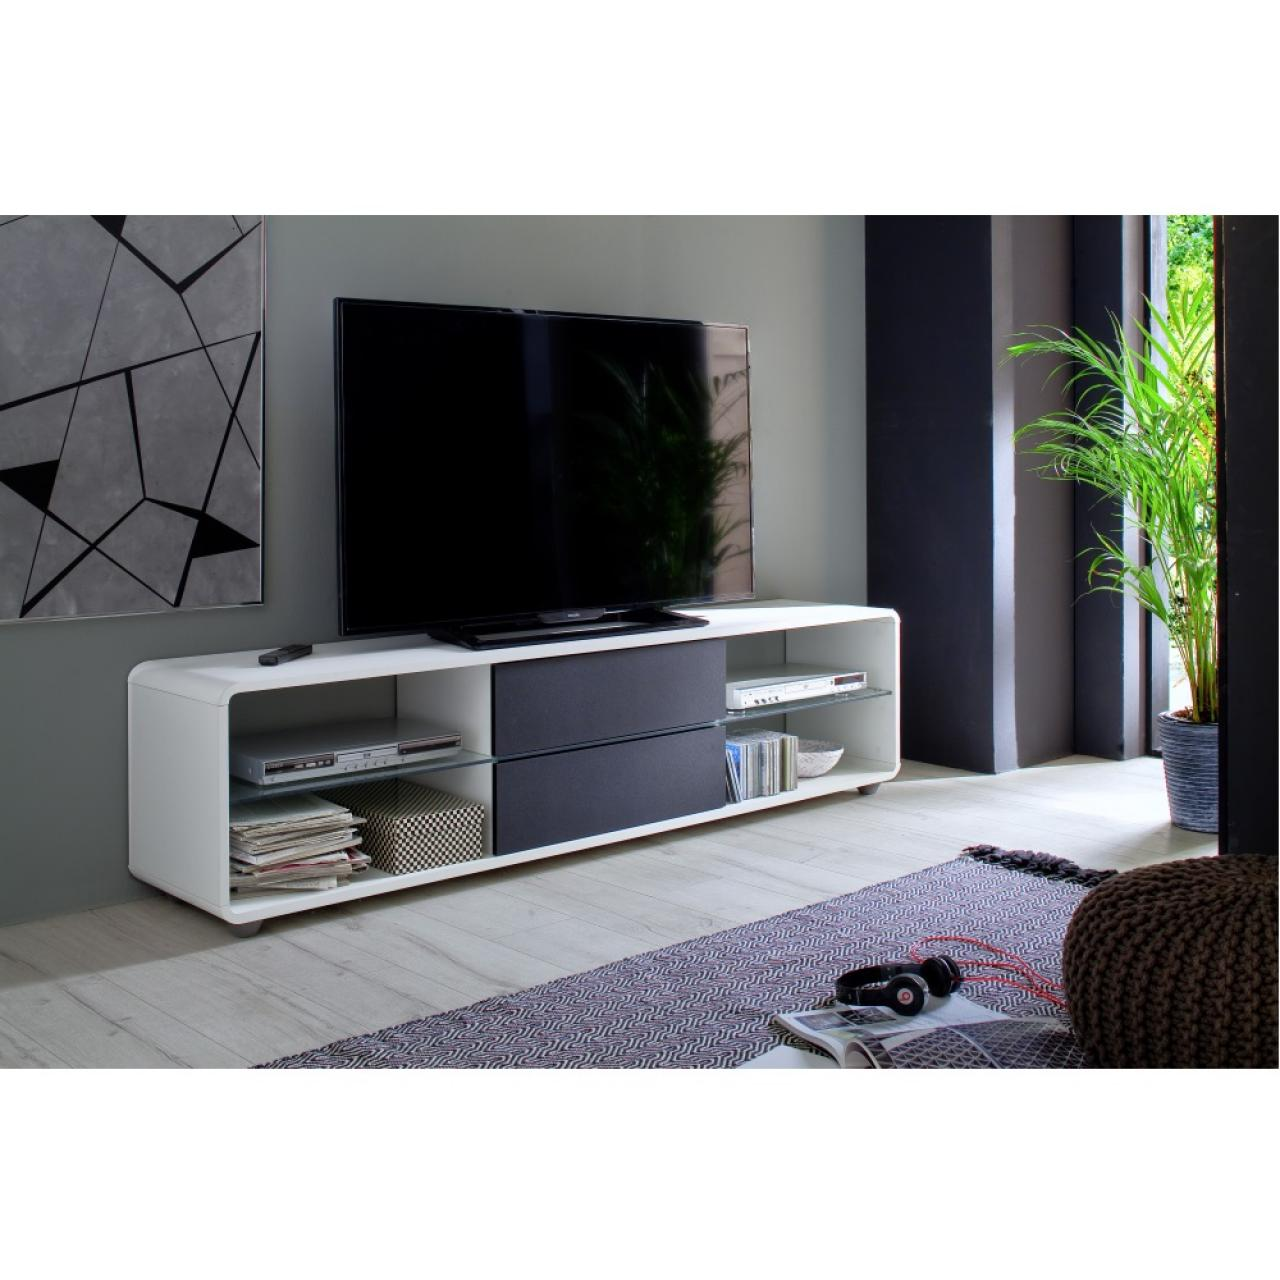 tv lowboard mariola wei anthrazit 4 offene f cher m bel j hnichen center gmbh. Black Bedroom Furniture Sets. Home Design Ideas